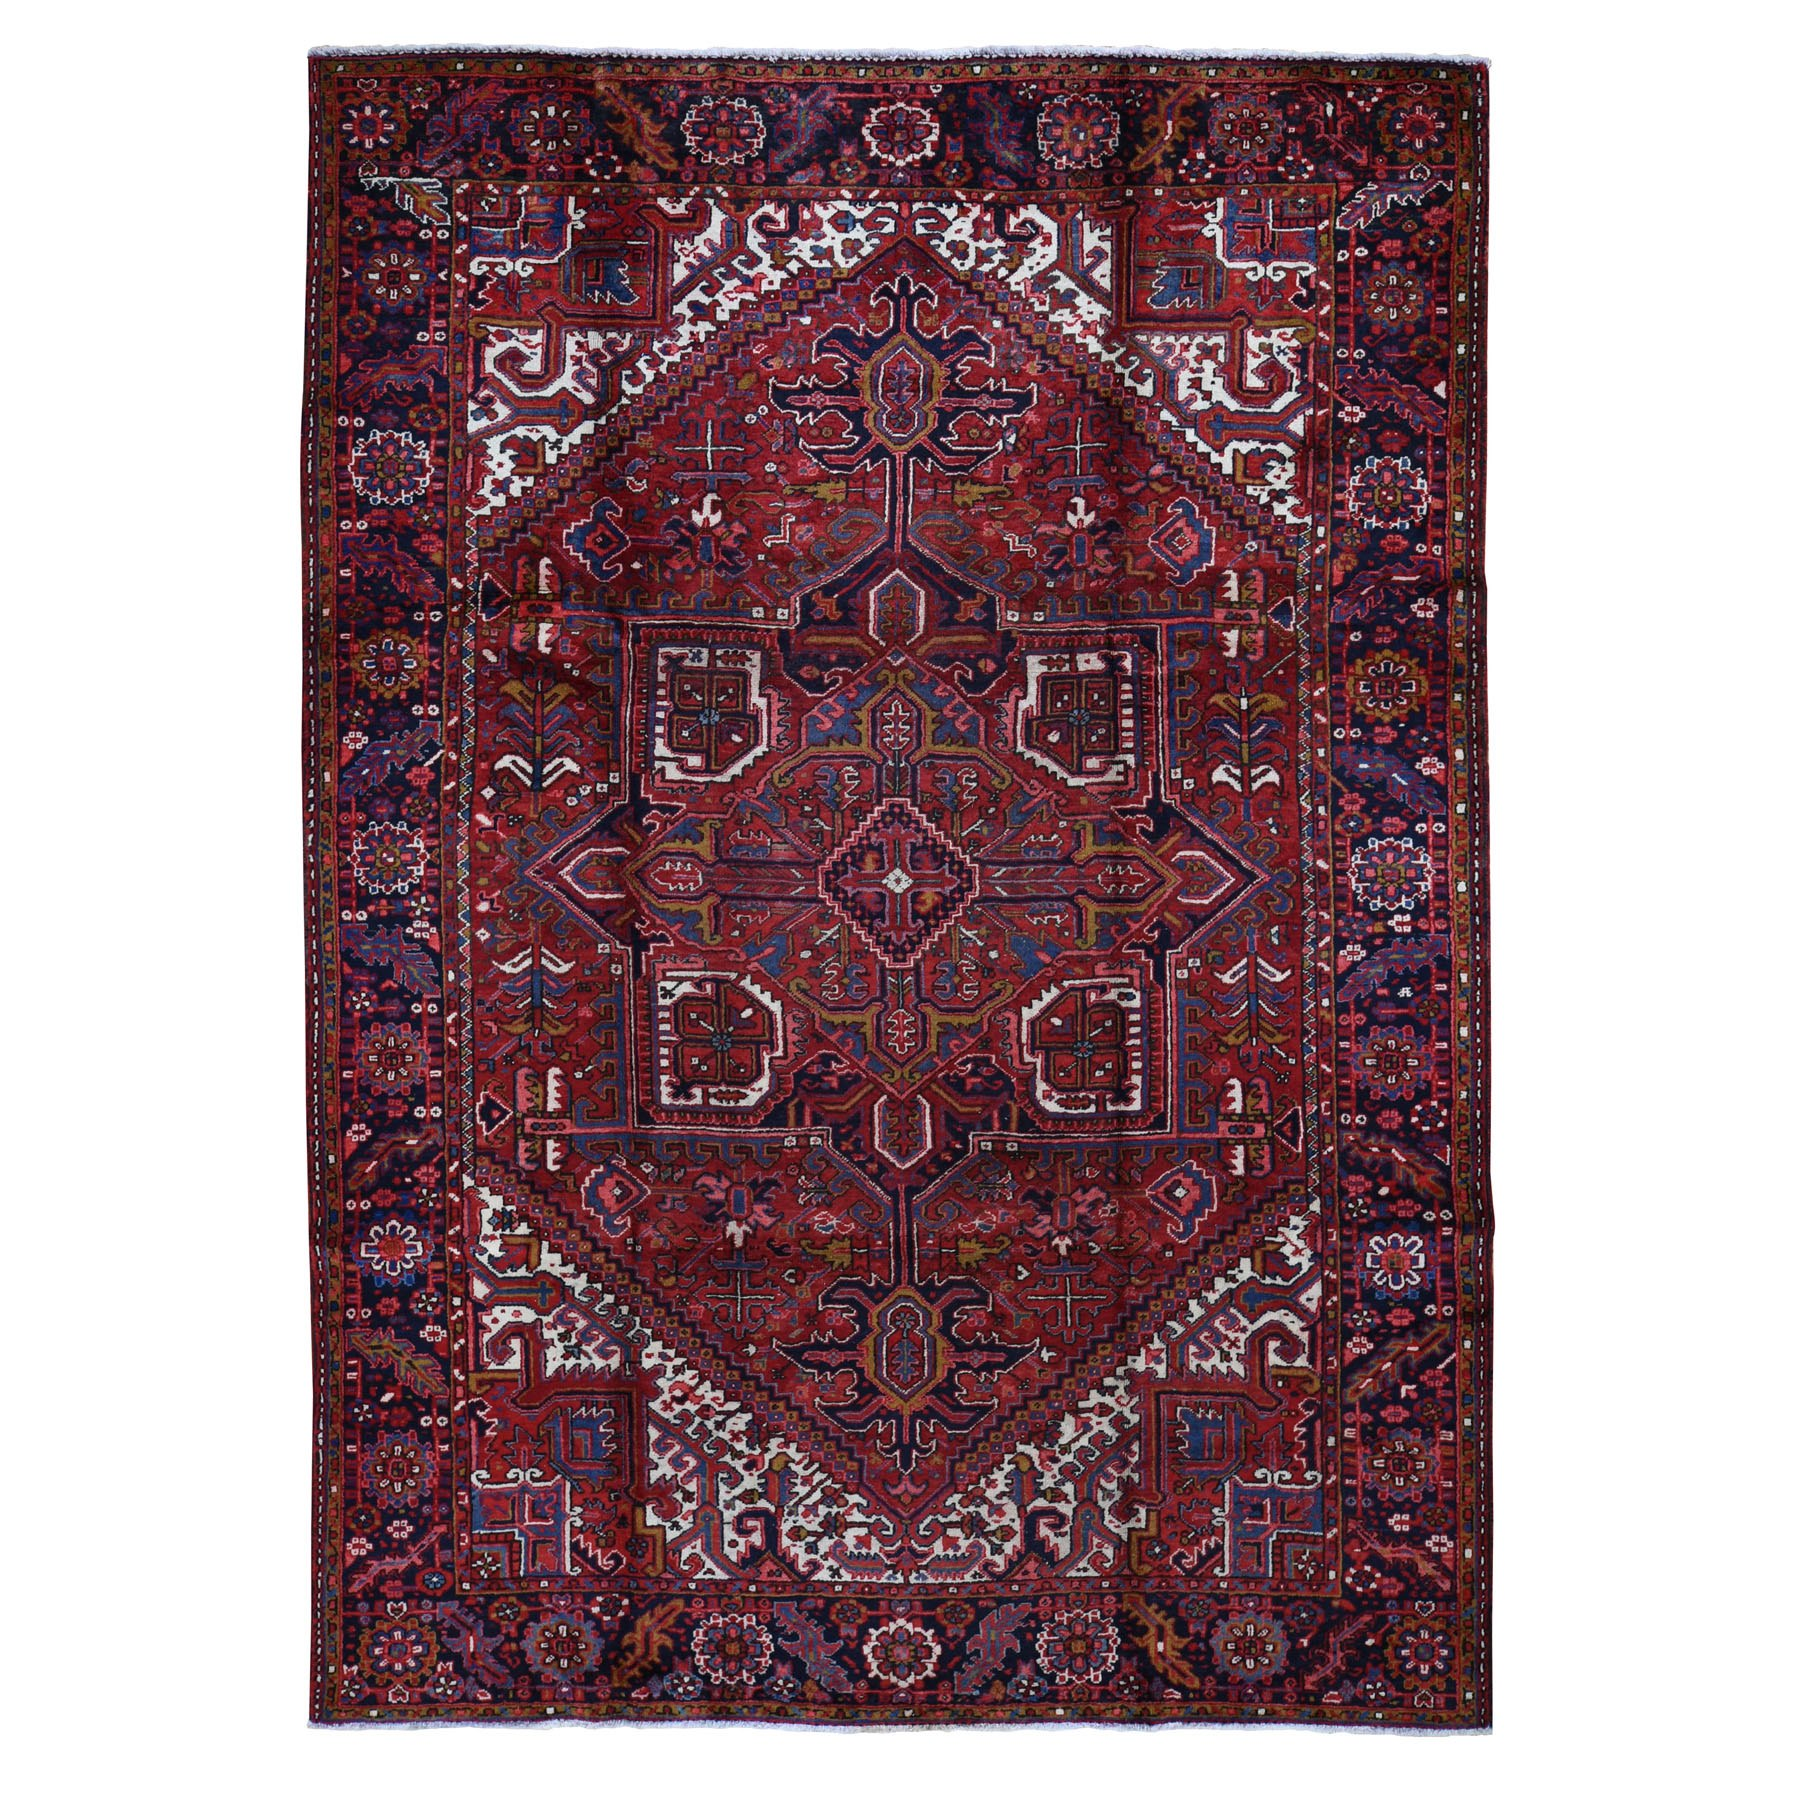 "8'1""x11'4"" Red Semi Antique Persian Heriz Geometric Design Thick and Plush Hand Knotted Oriental Rug"